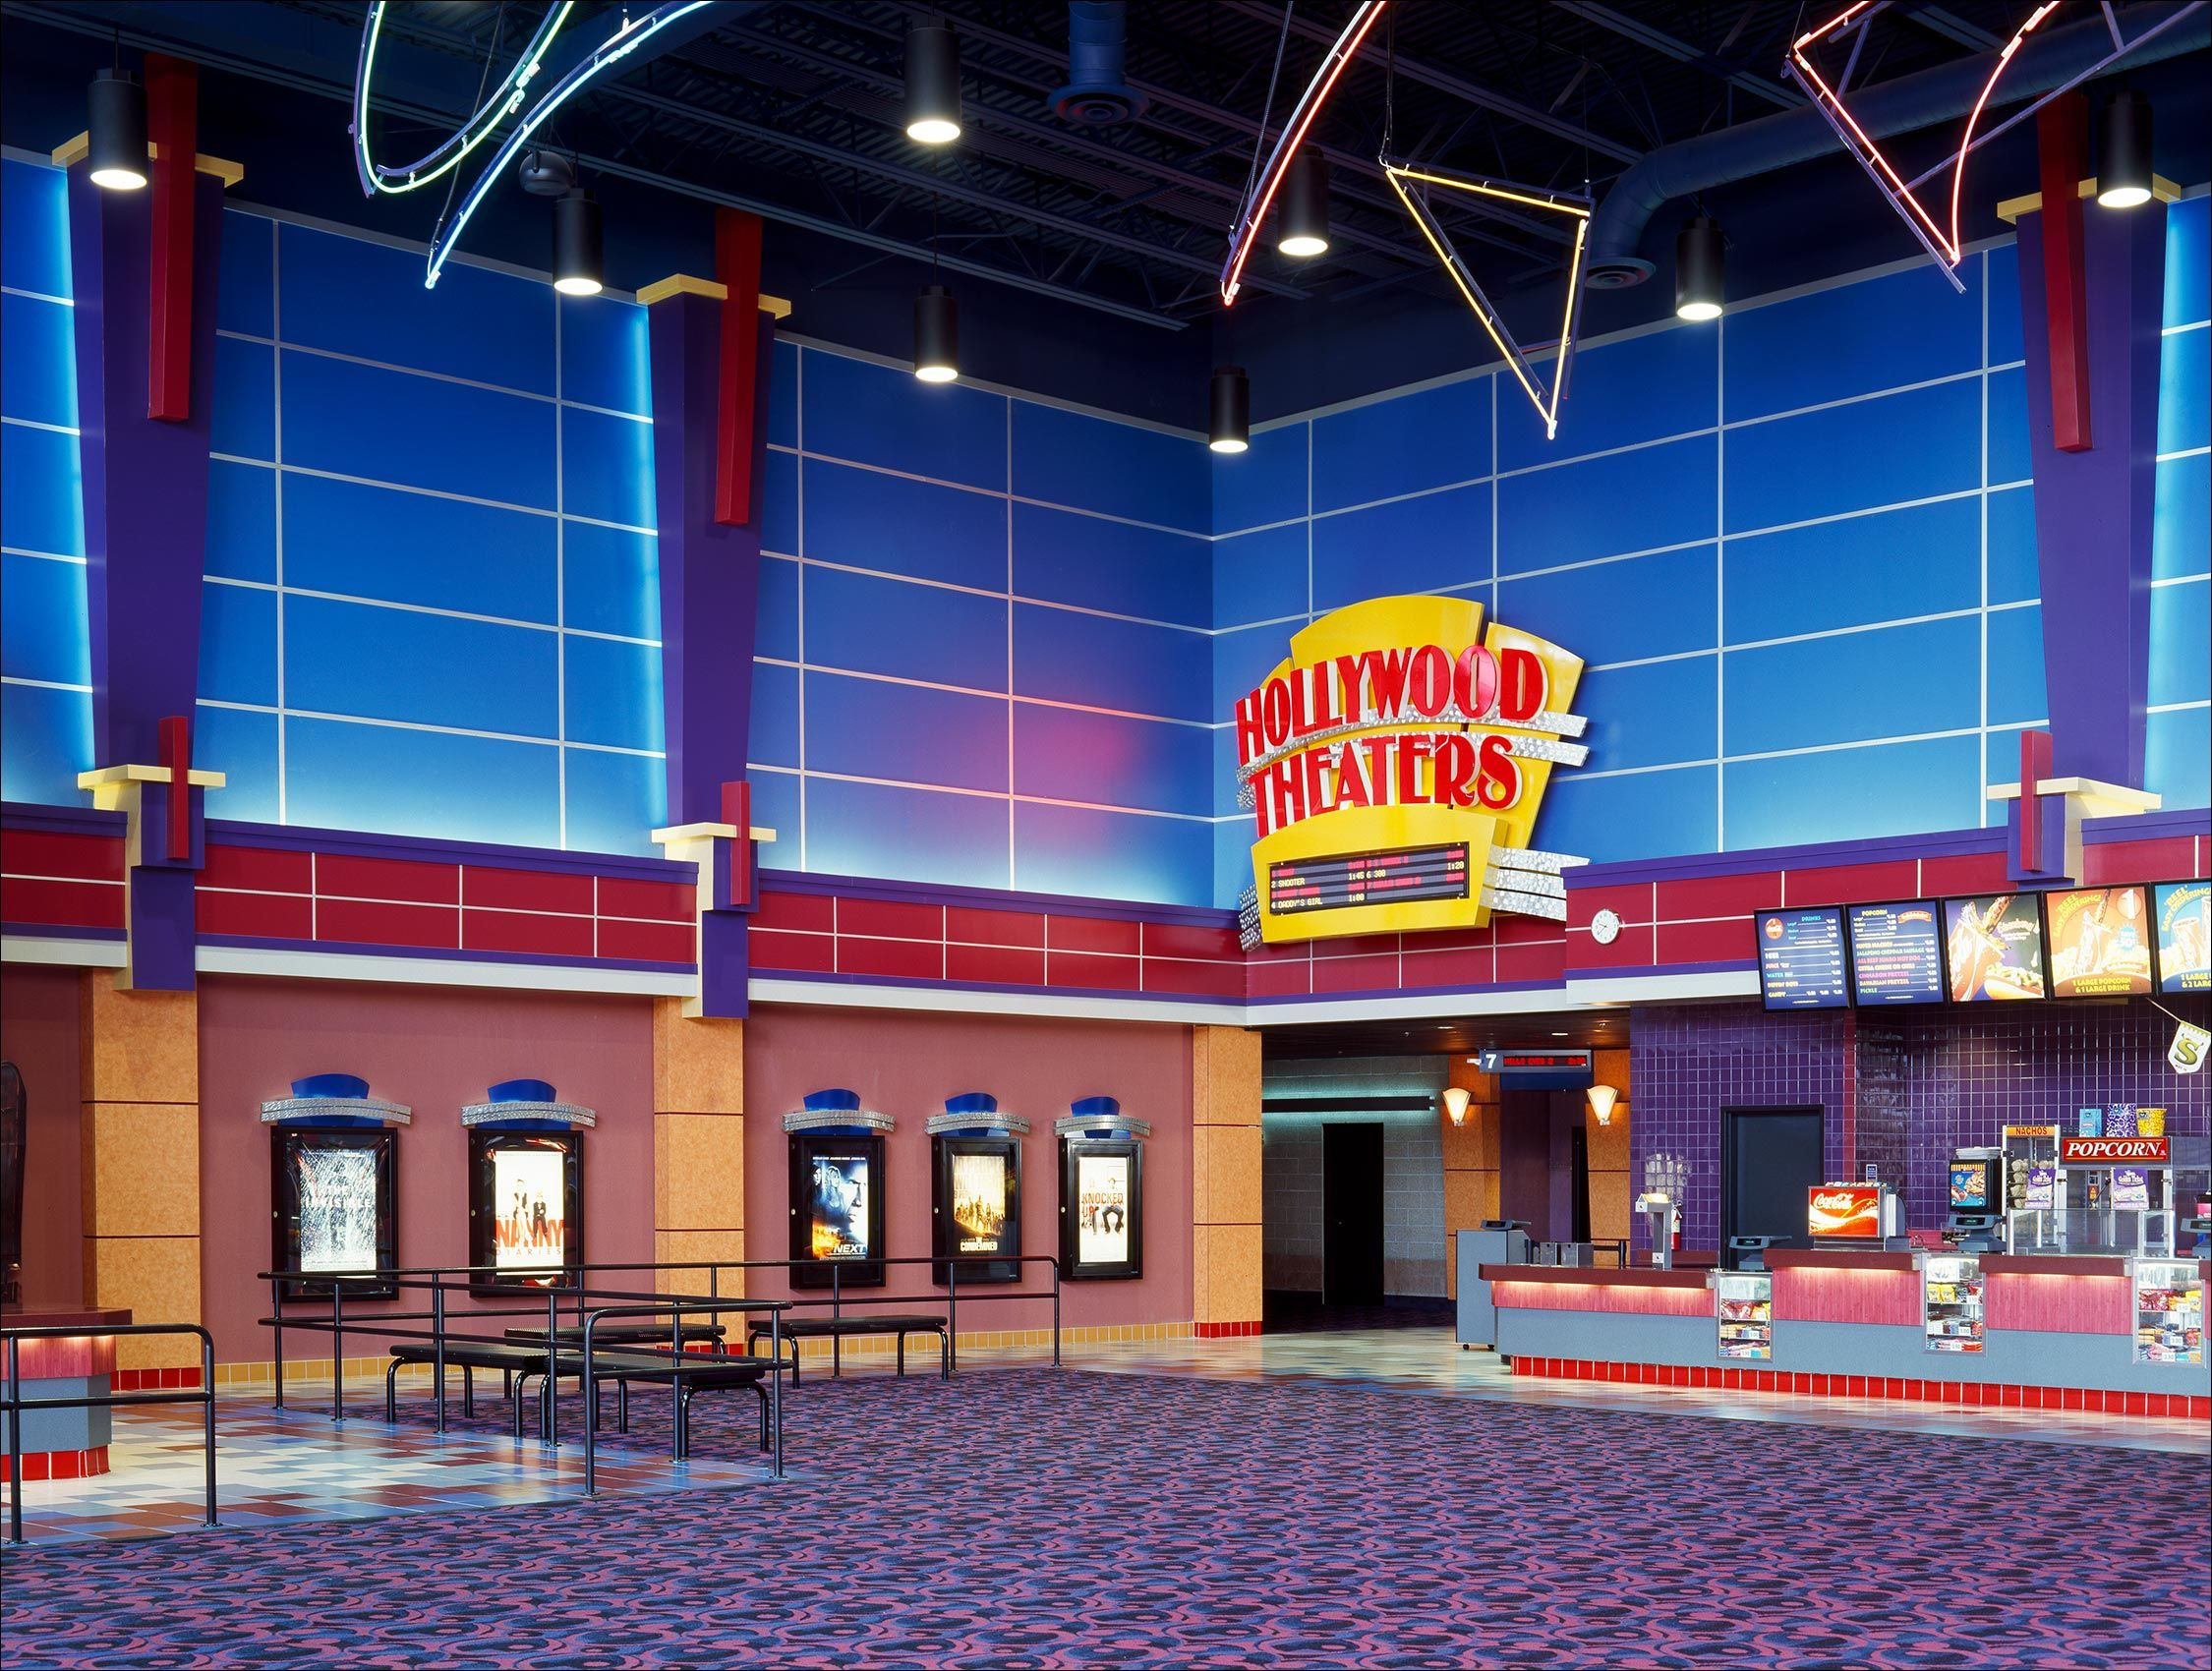 Hollywood_Theaters_Florida_California_ArchitecturalPhotography.jpg